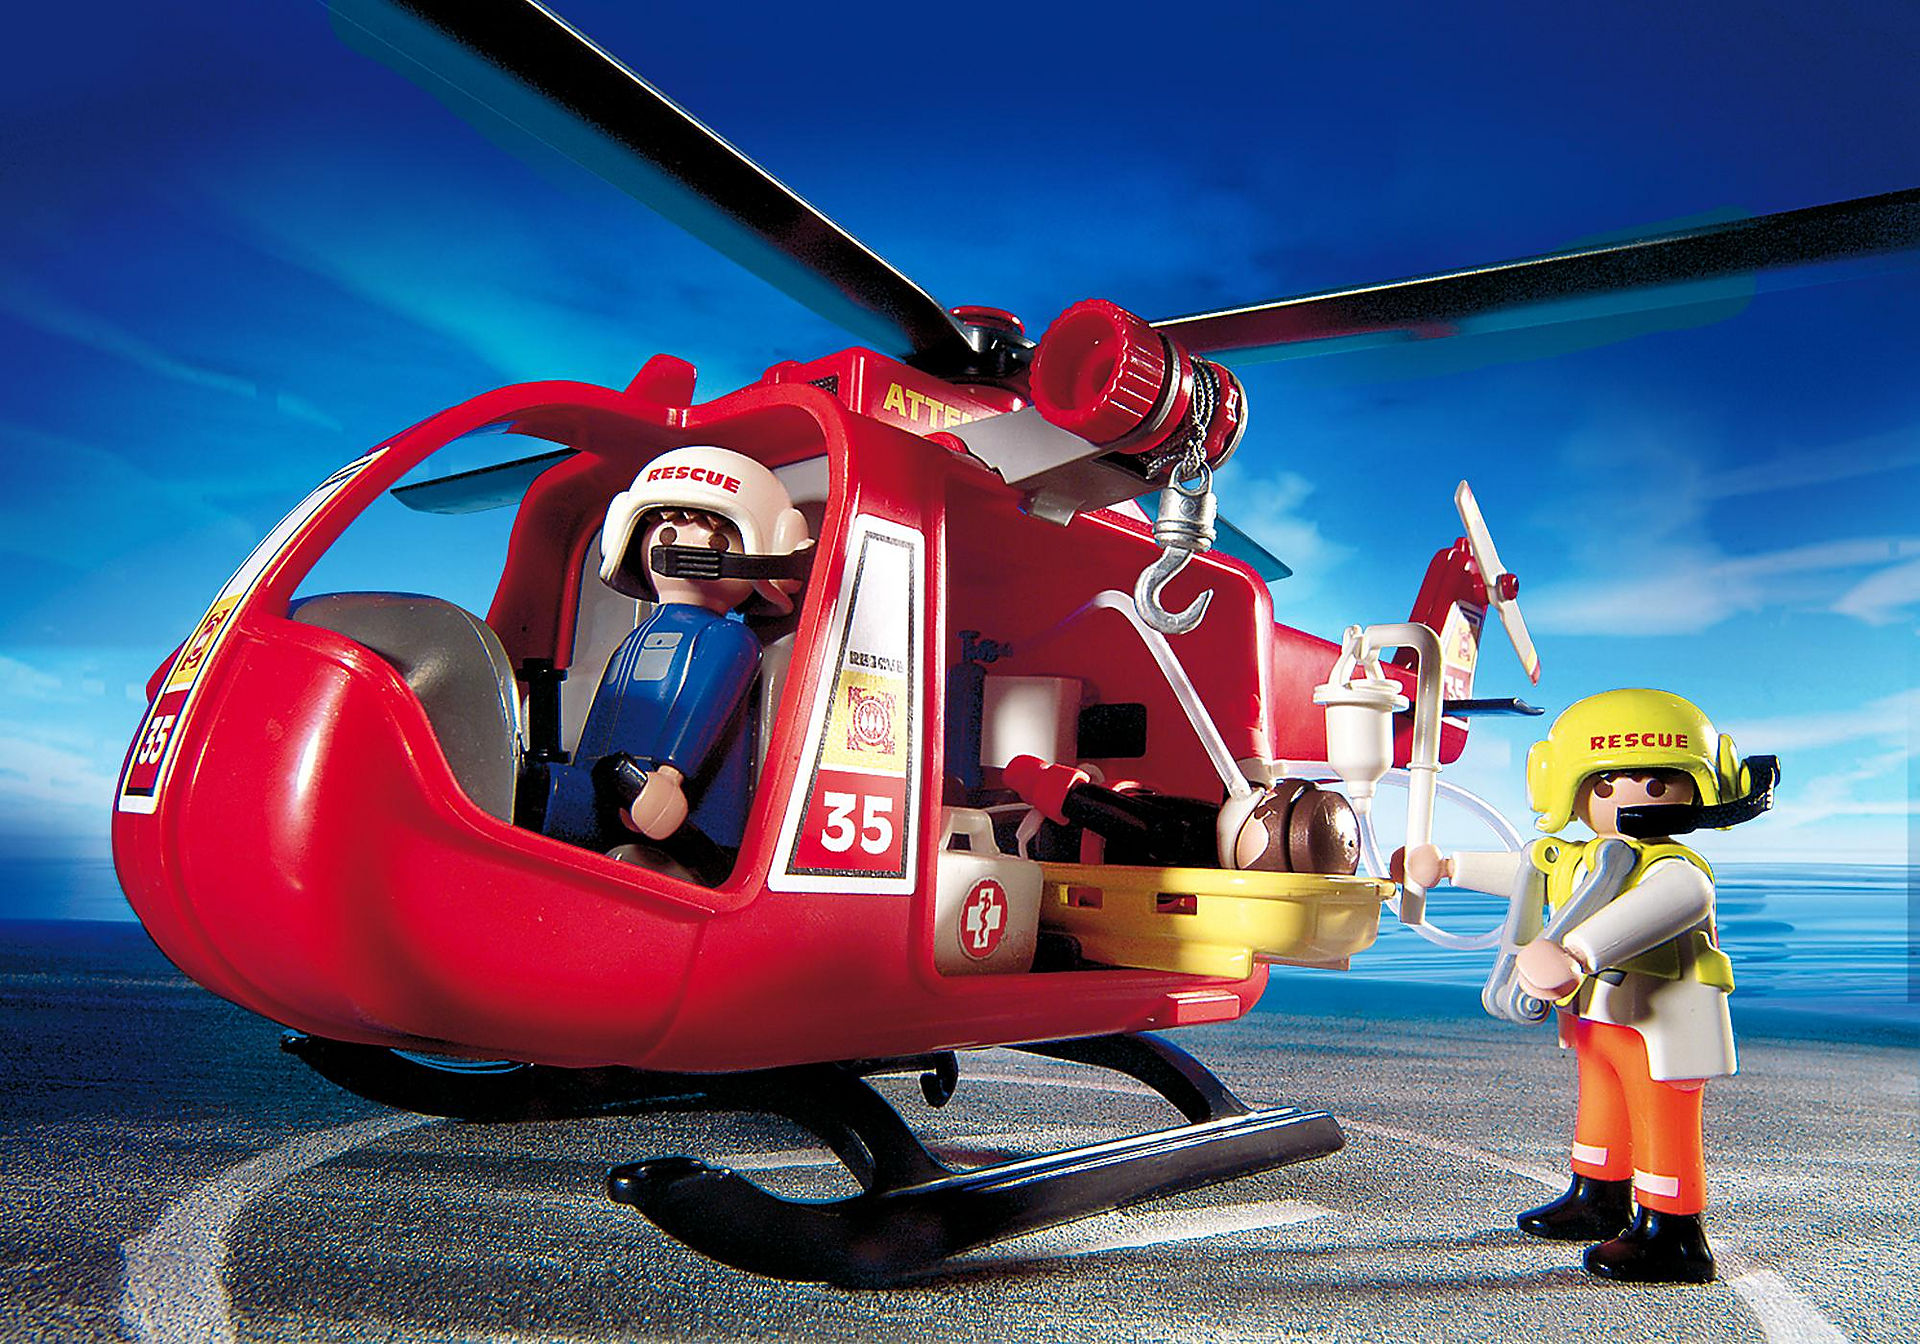 http://media.playmobil.com/i/playmobil/4428_product_extra2/SOS-Helikopter/Rettungsboot